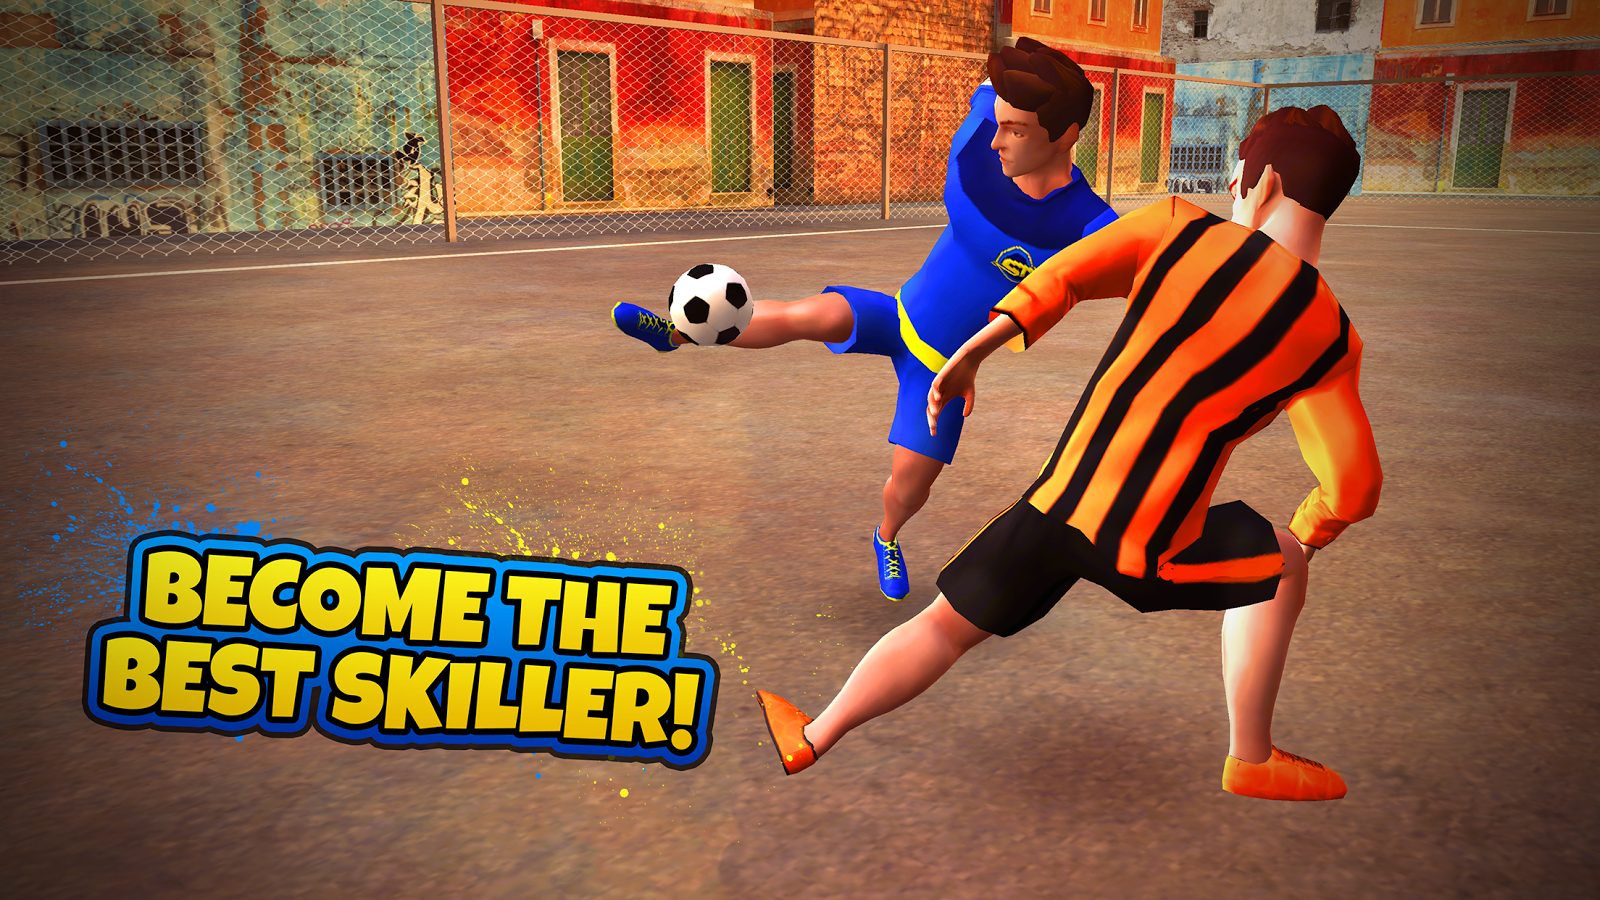 SkillTwins Football Game Screenshot 5